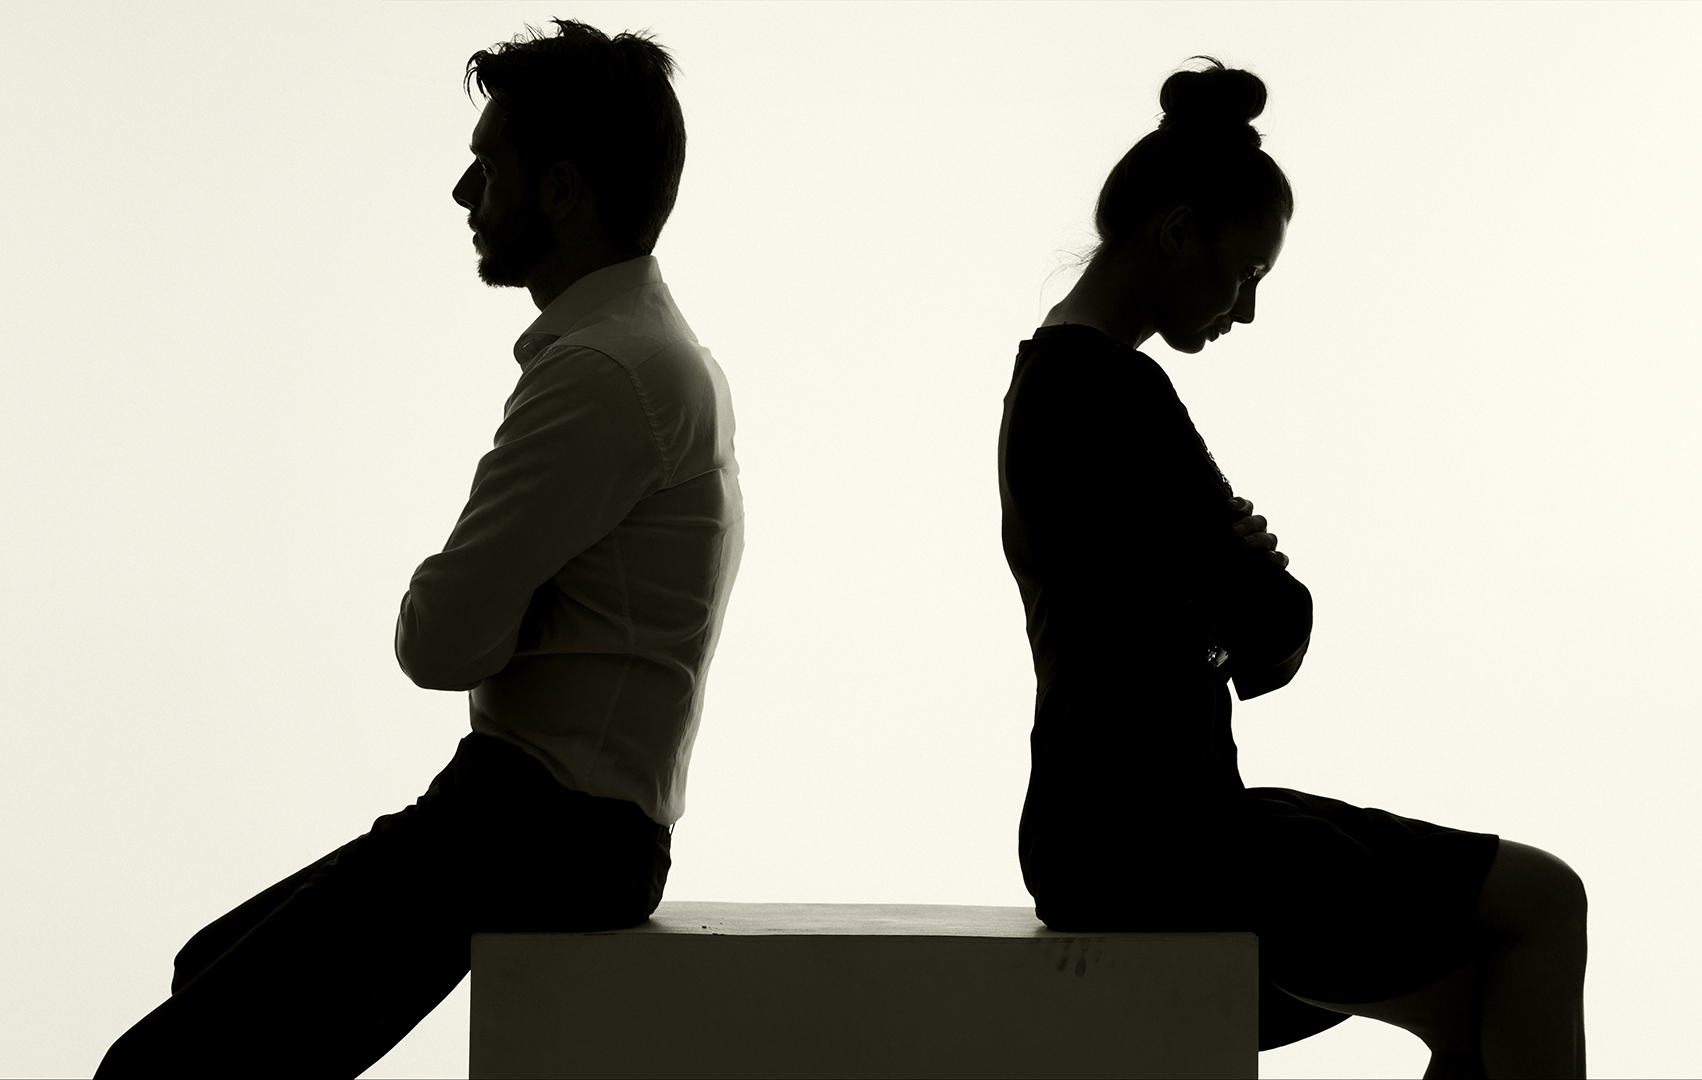 silhouette of a couple sitting with their backs to each other and arms crossed looking downcast